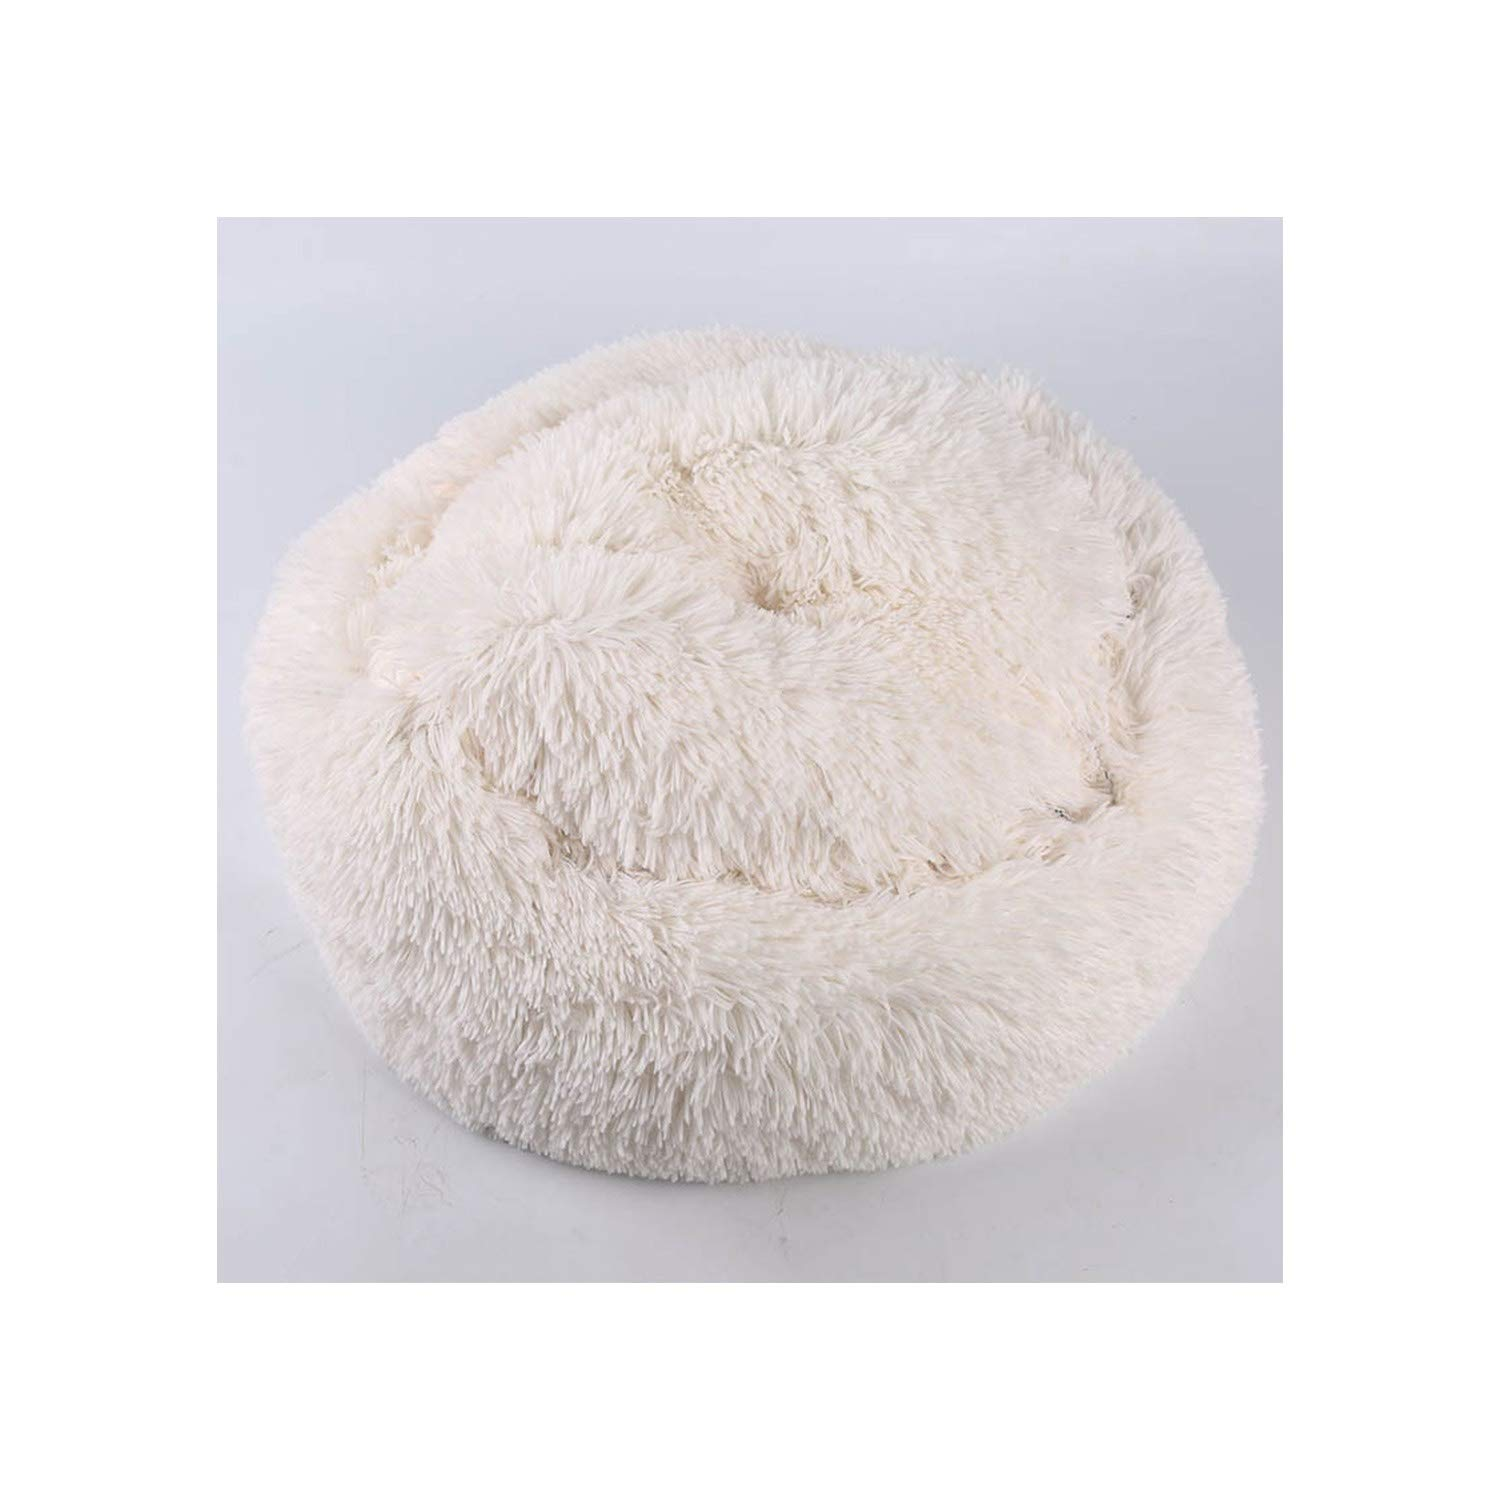 Warm Fleece Dog Bed Round Pet Lounger Cushion for Small Medium Large Dogs & Cat Winter Dog Kennel Puppy Mat,White,S